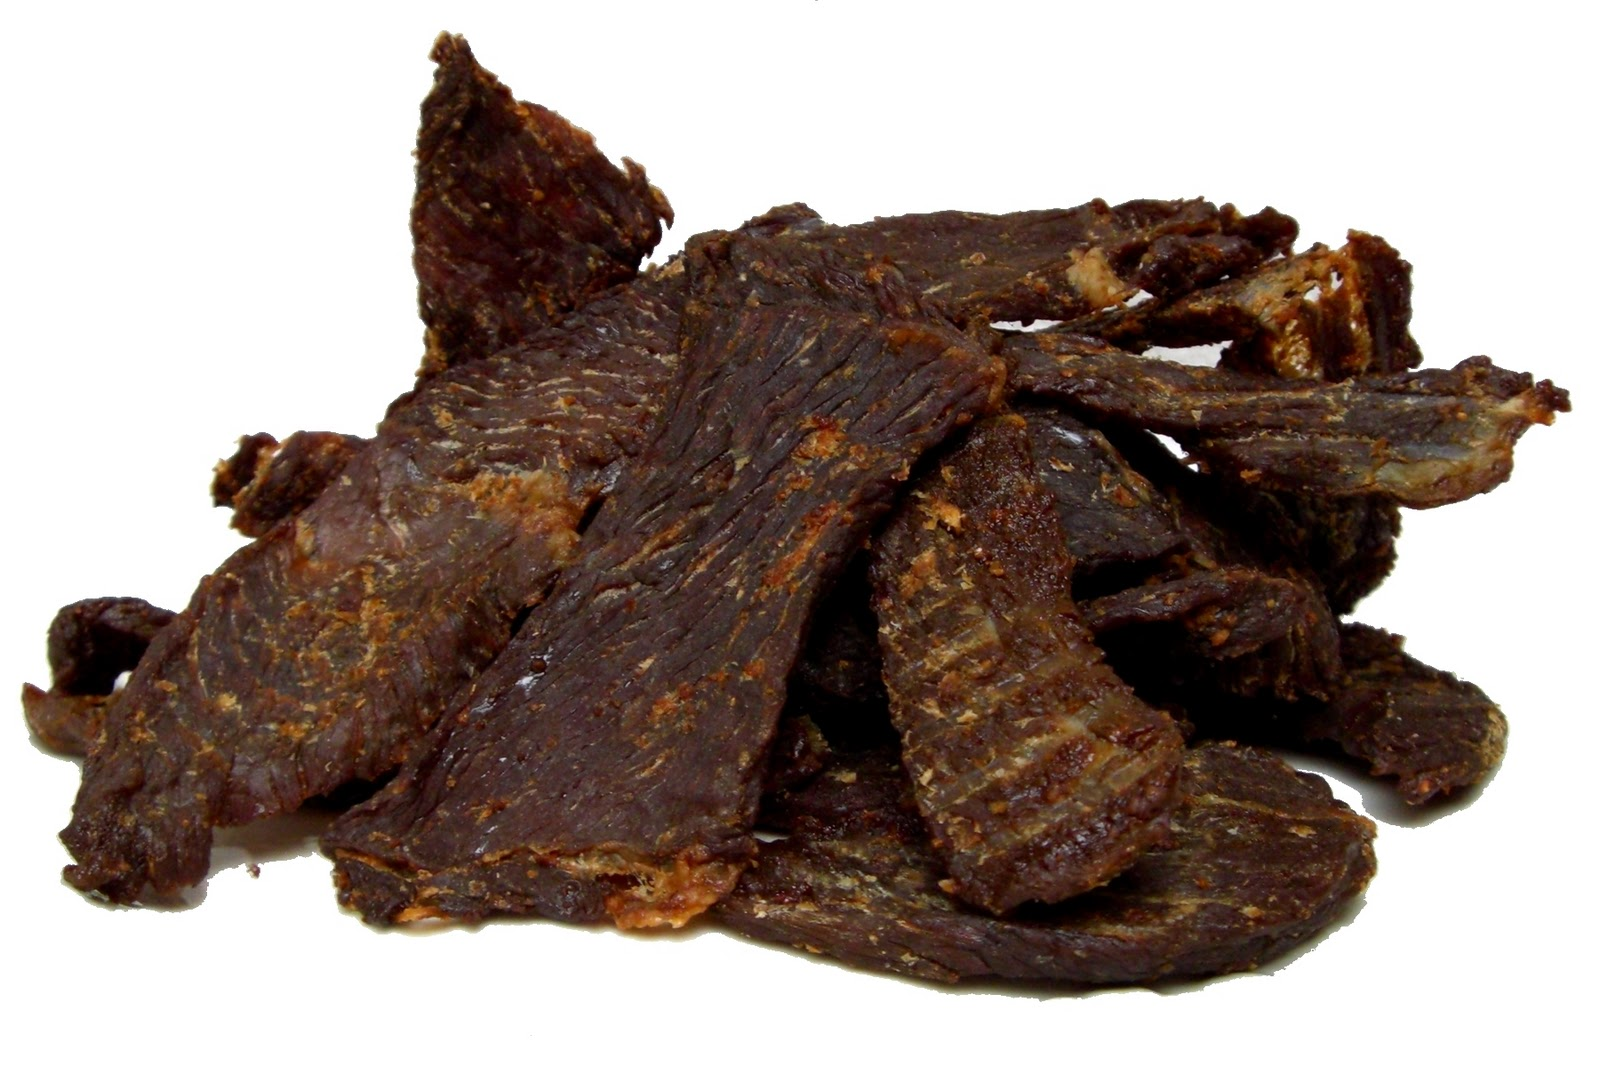 Beef jerky has always been one of my favorite snack foods, but trying ...